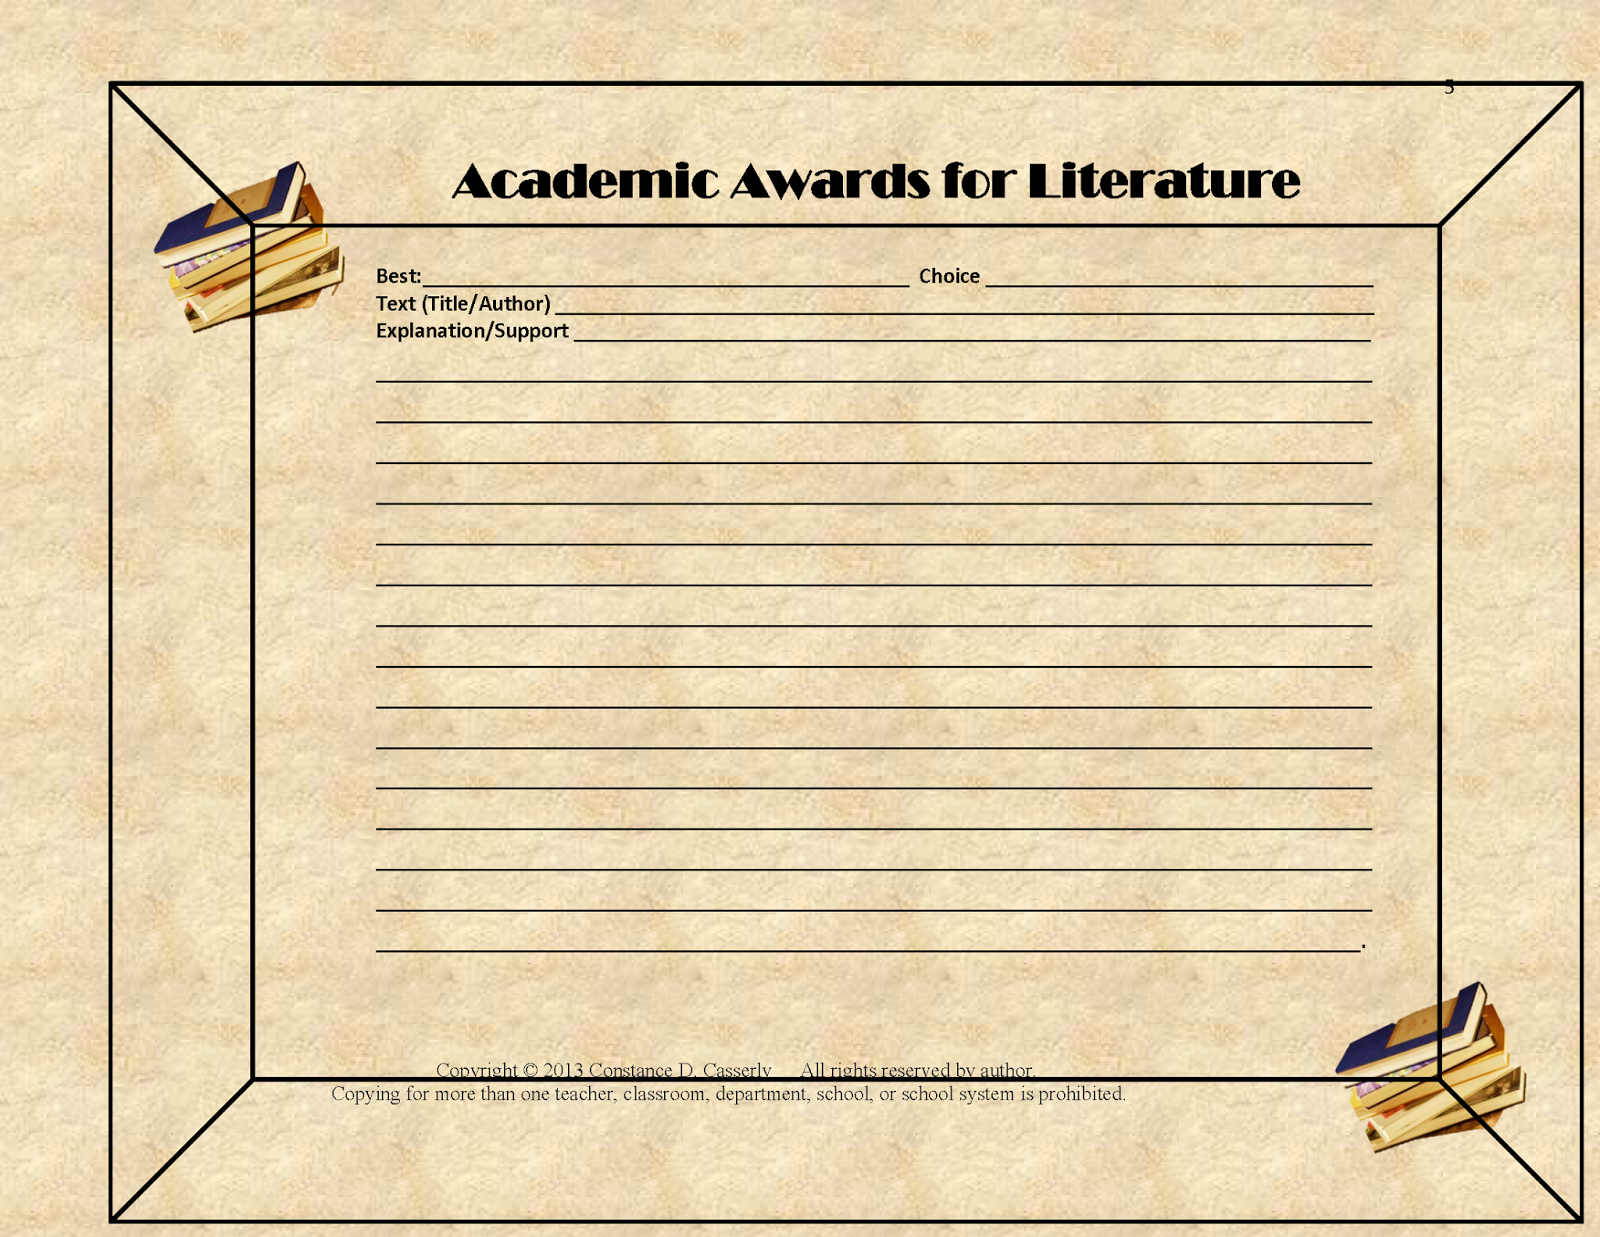 Academic Awards for Literature certificate